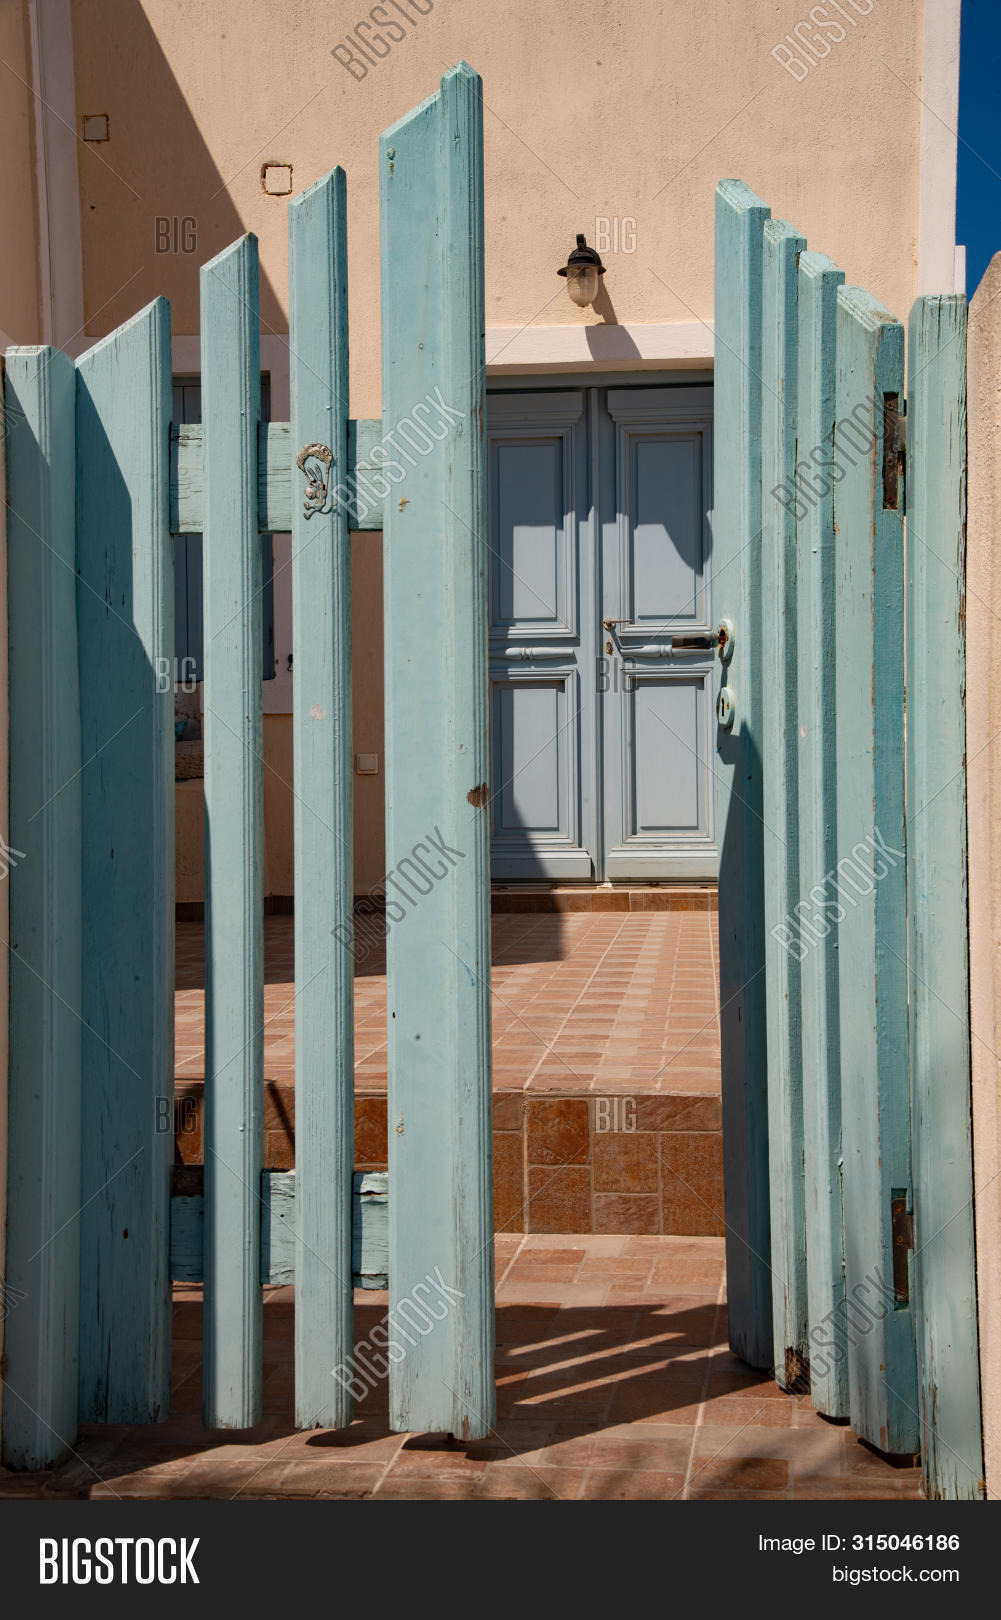 stock photo typical greek house entrance, with green gate and entrance door in the village of oia on the island